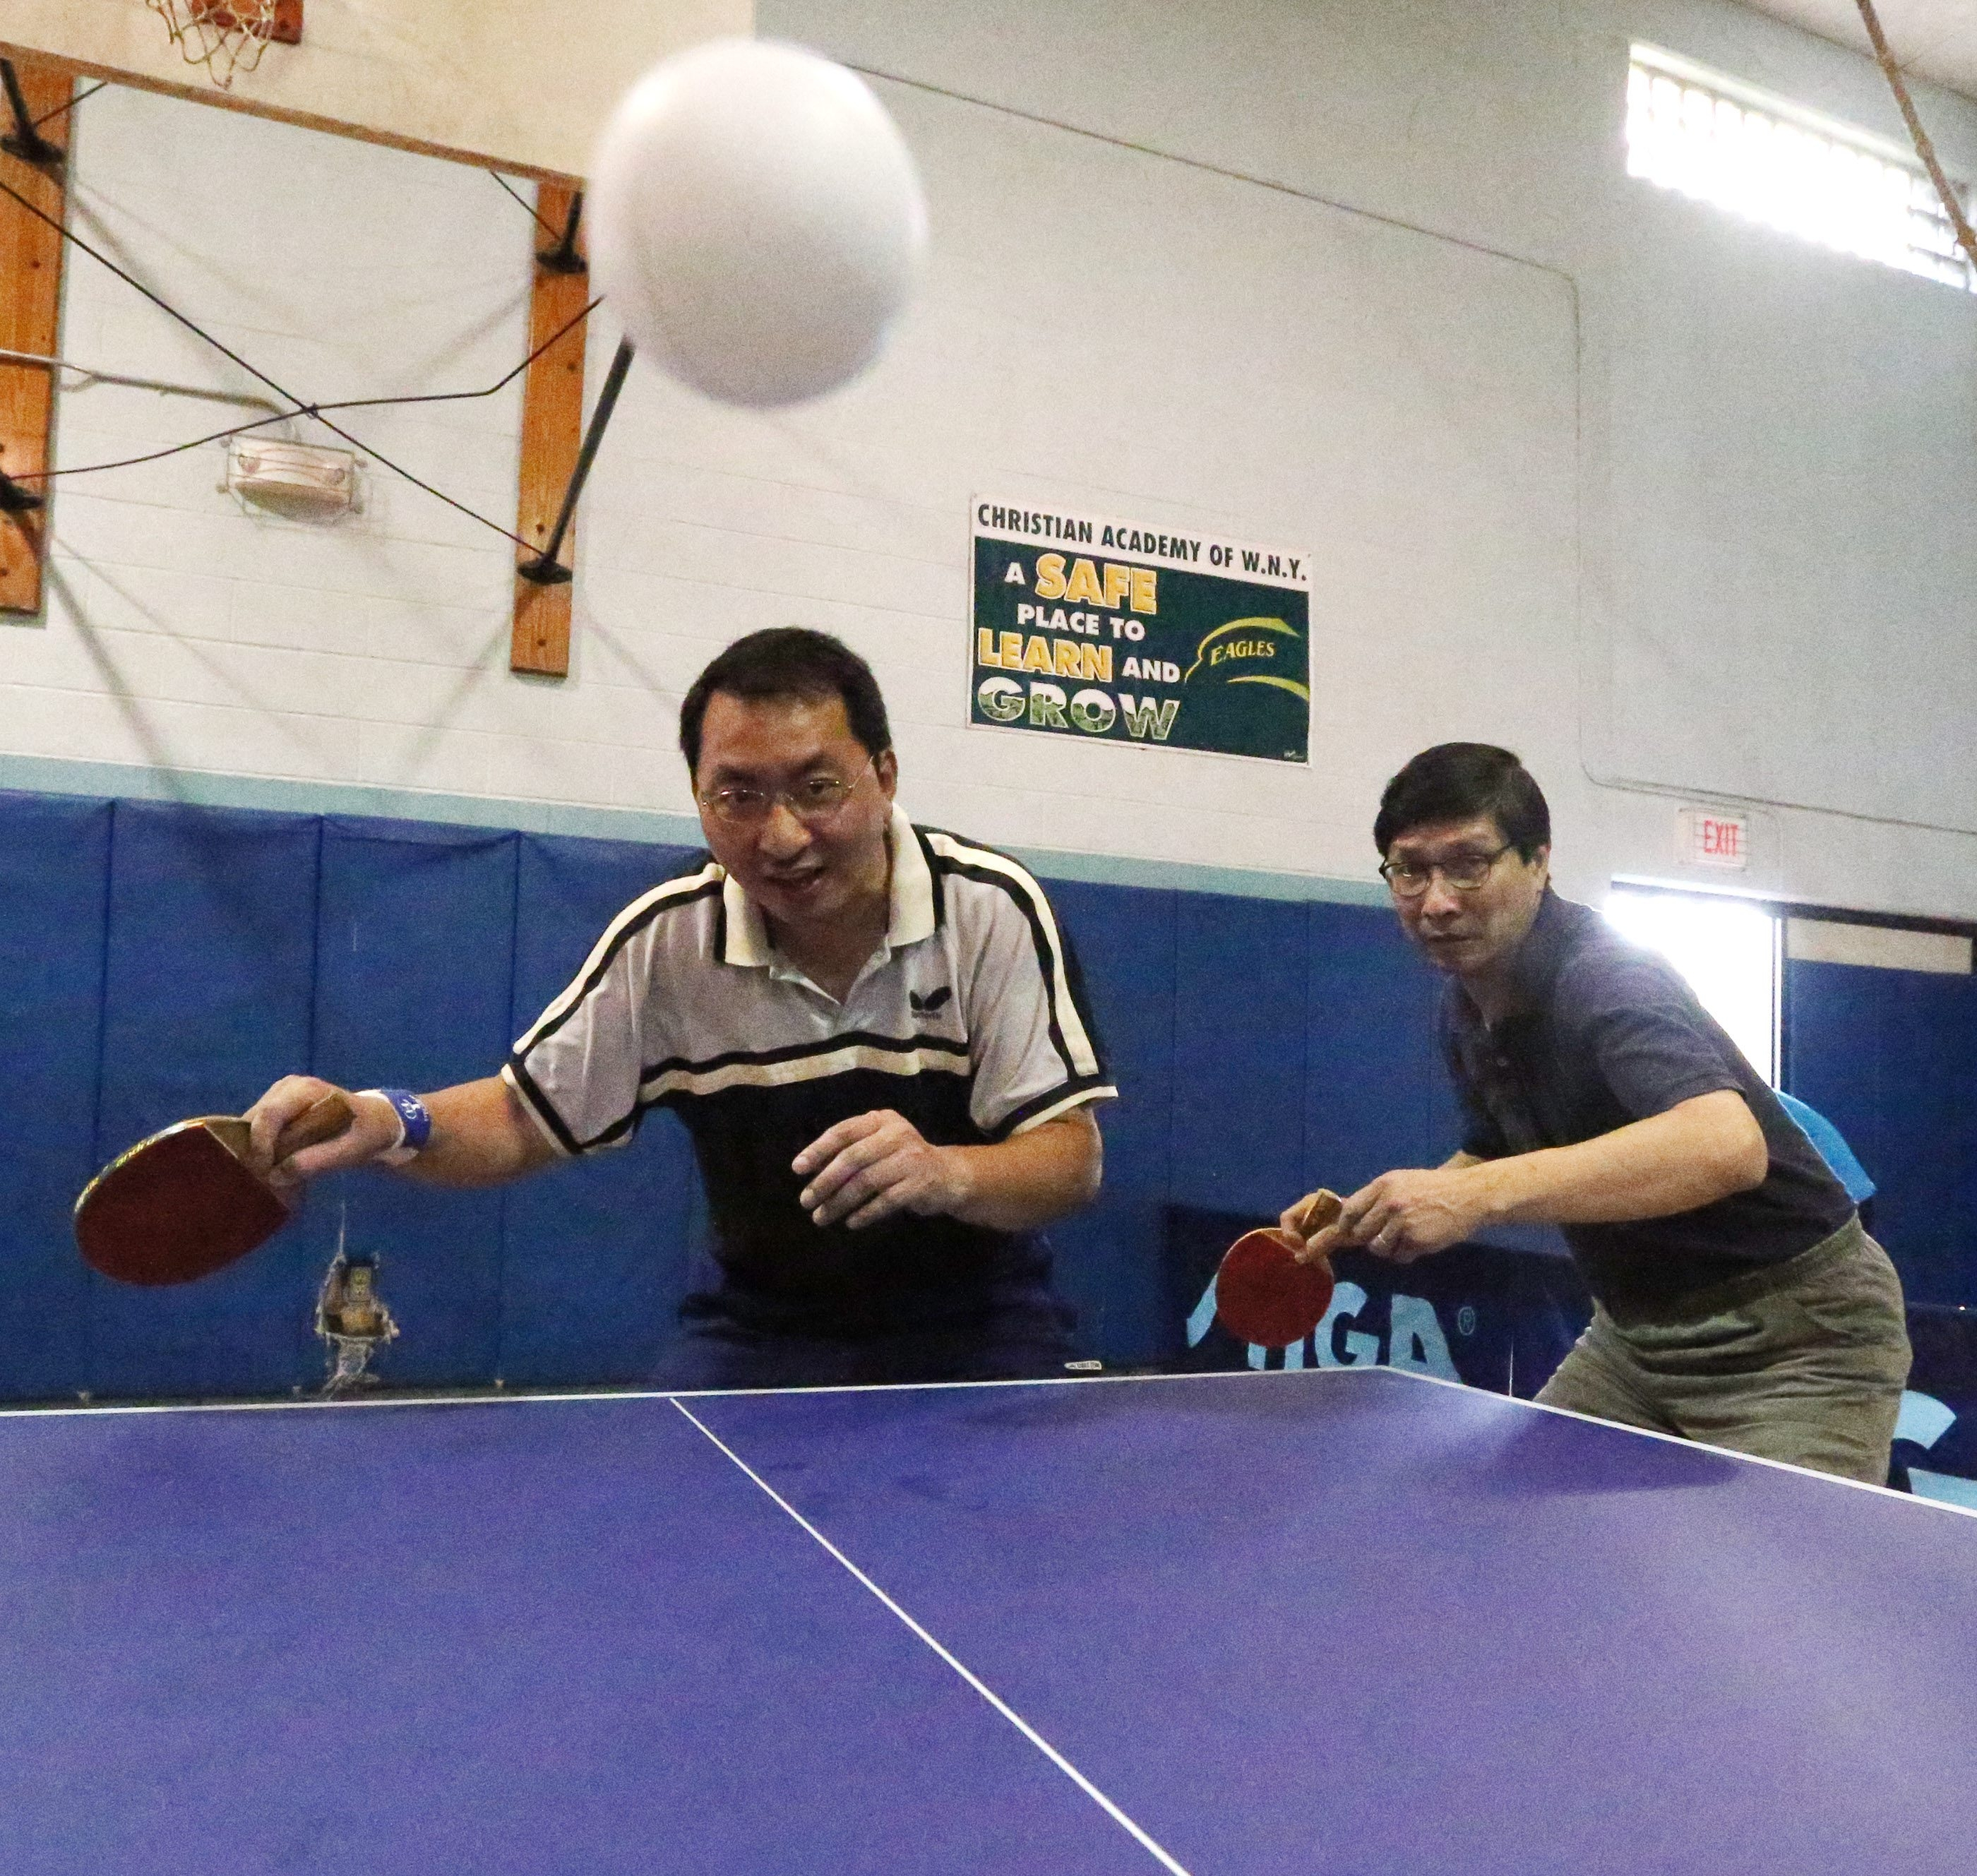 Yong Ren and Sunny Lee, two of the area's best at table tennis, team up for some doubles practice.